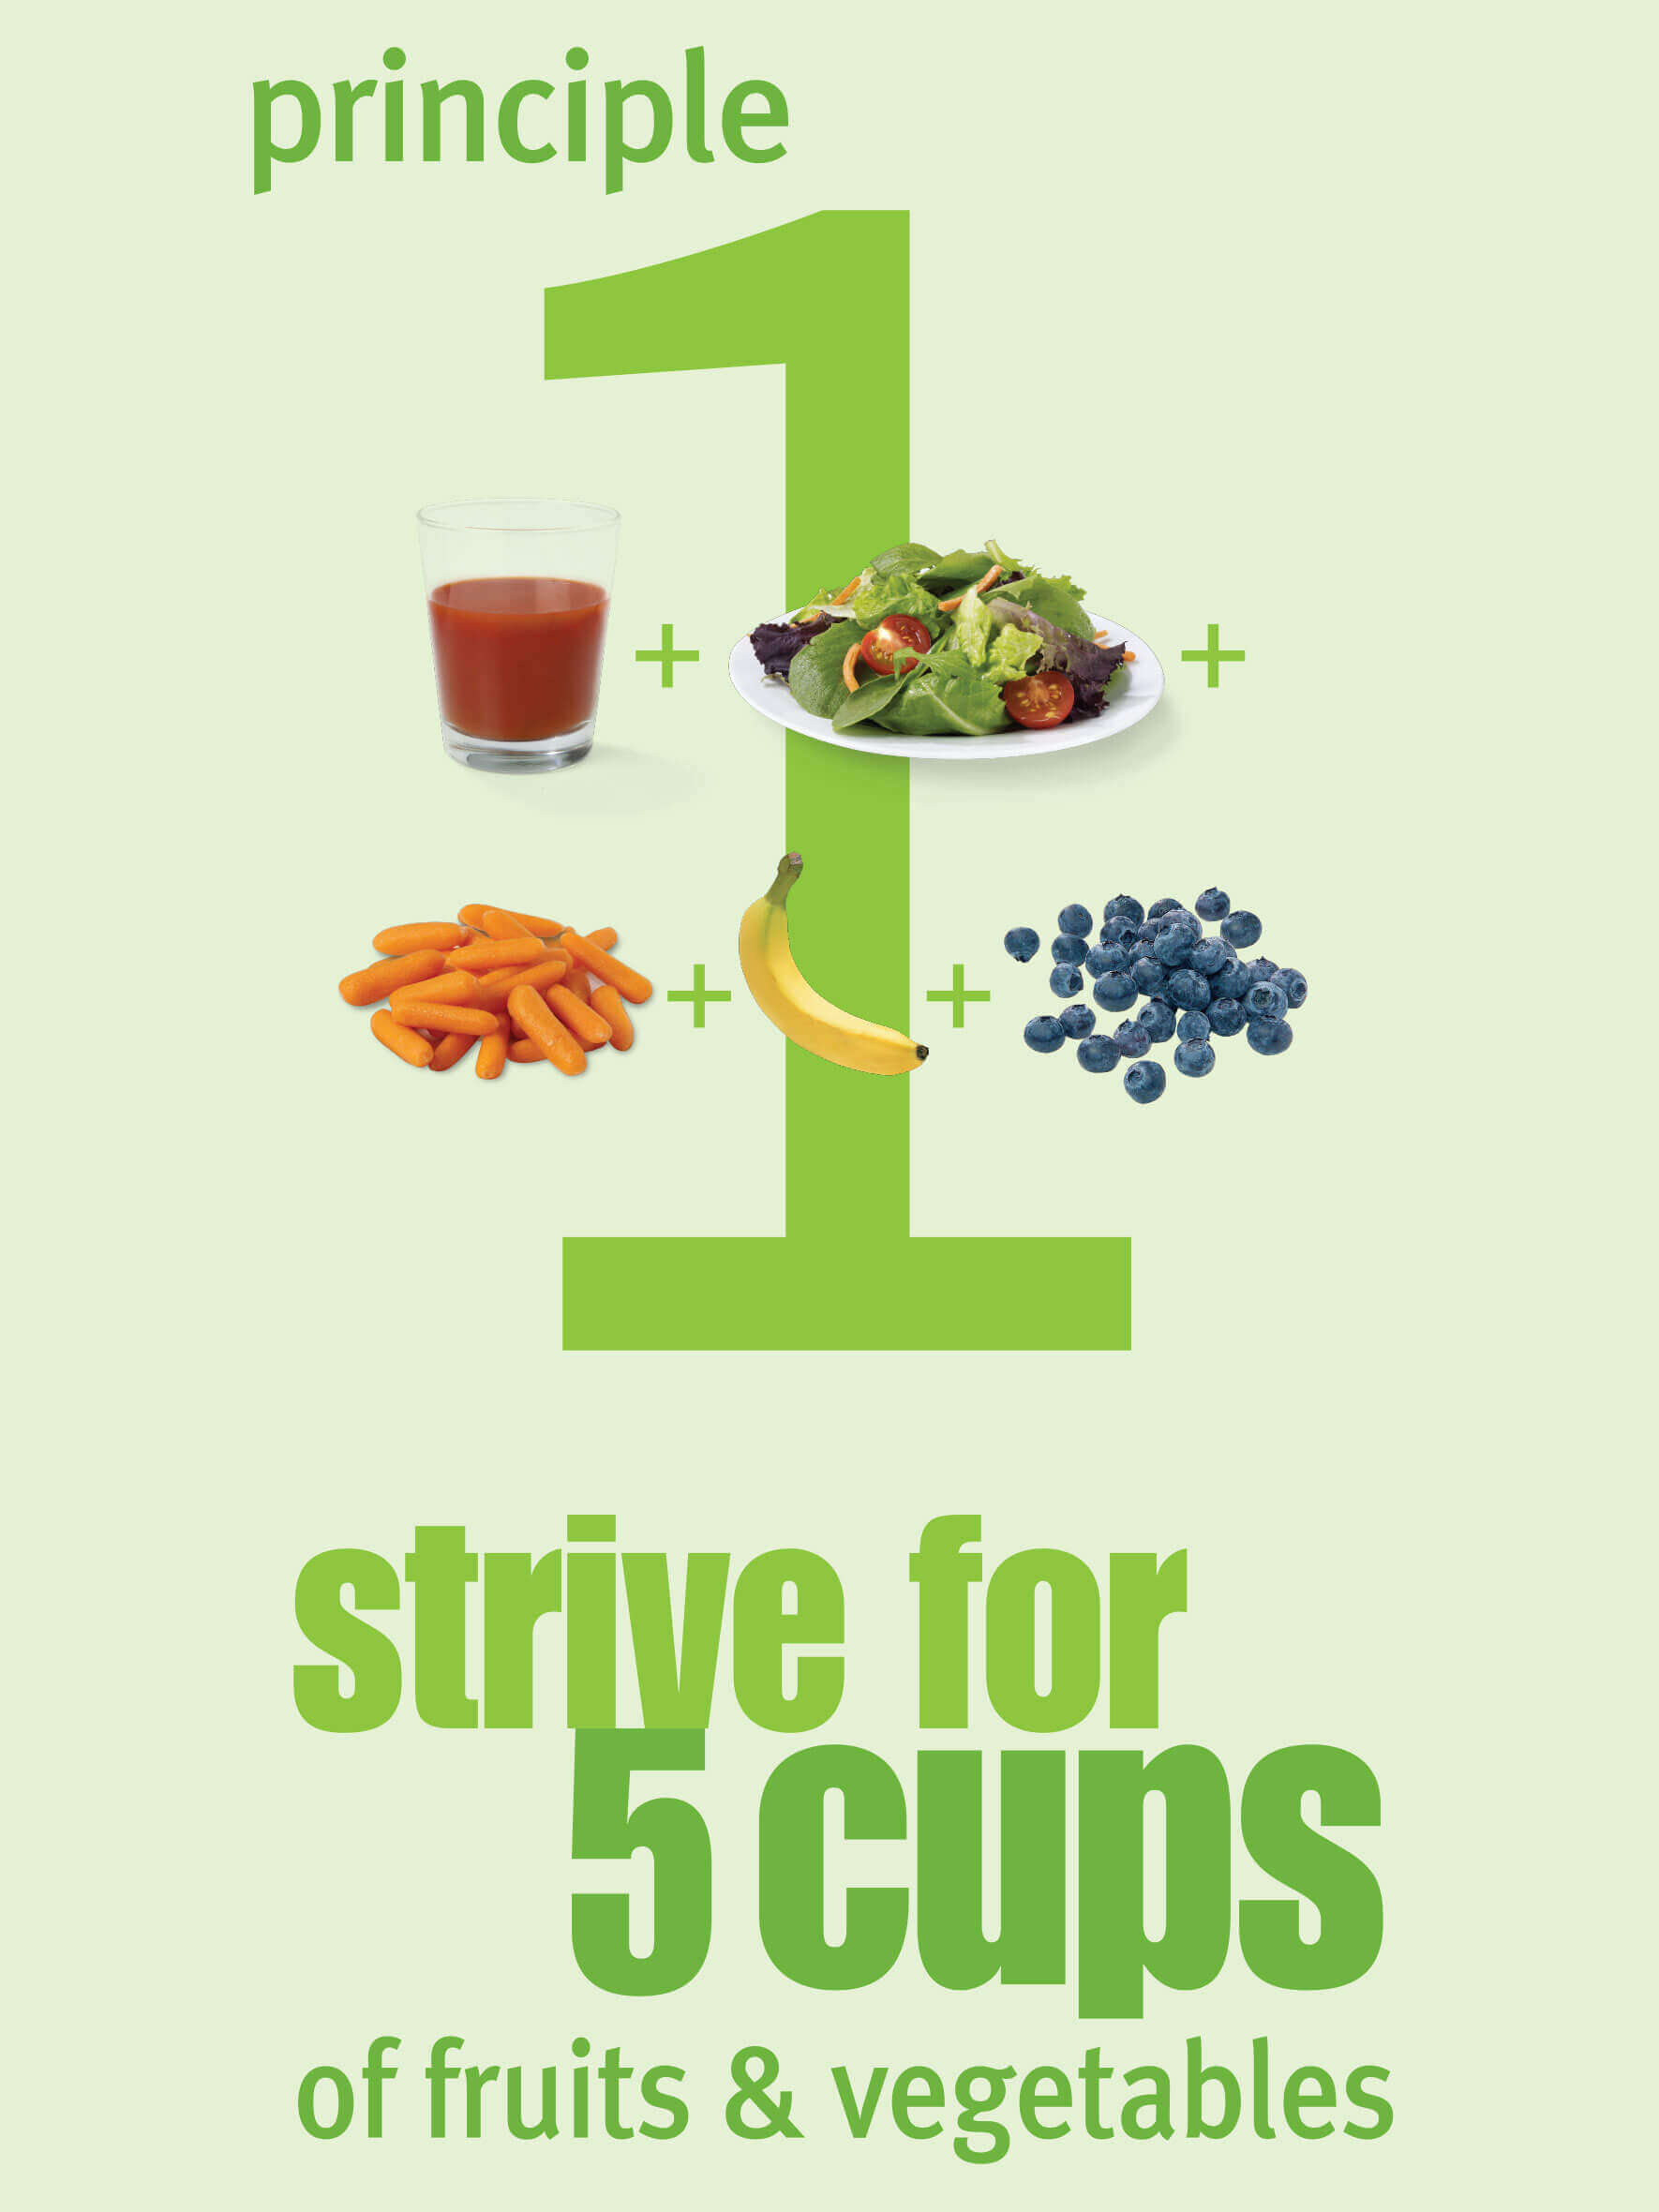 Principle 1 strive for 5 cups of fruits and vegetables